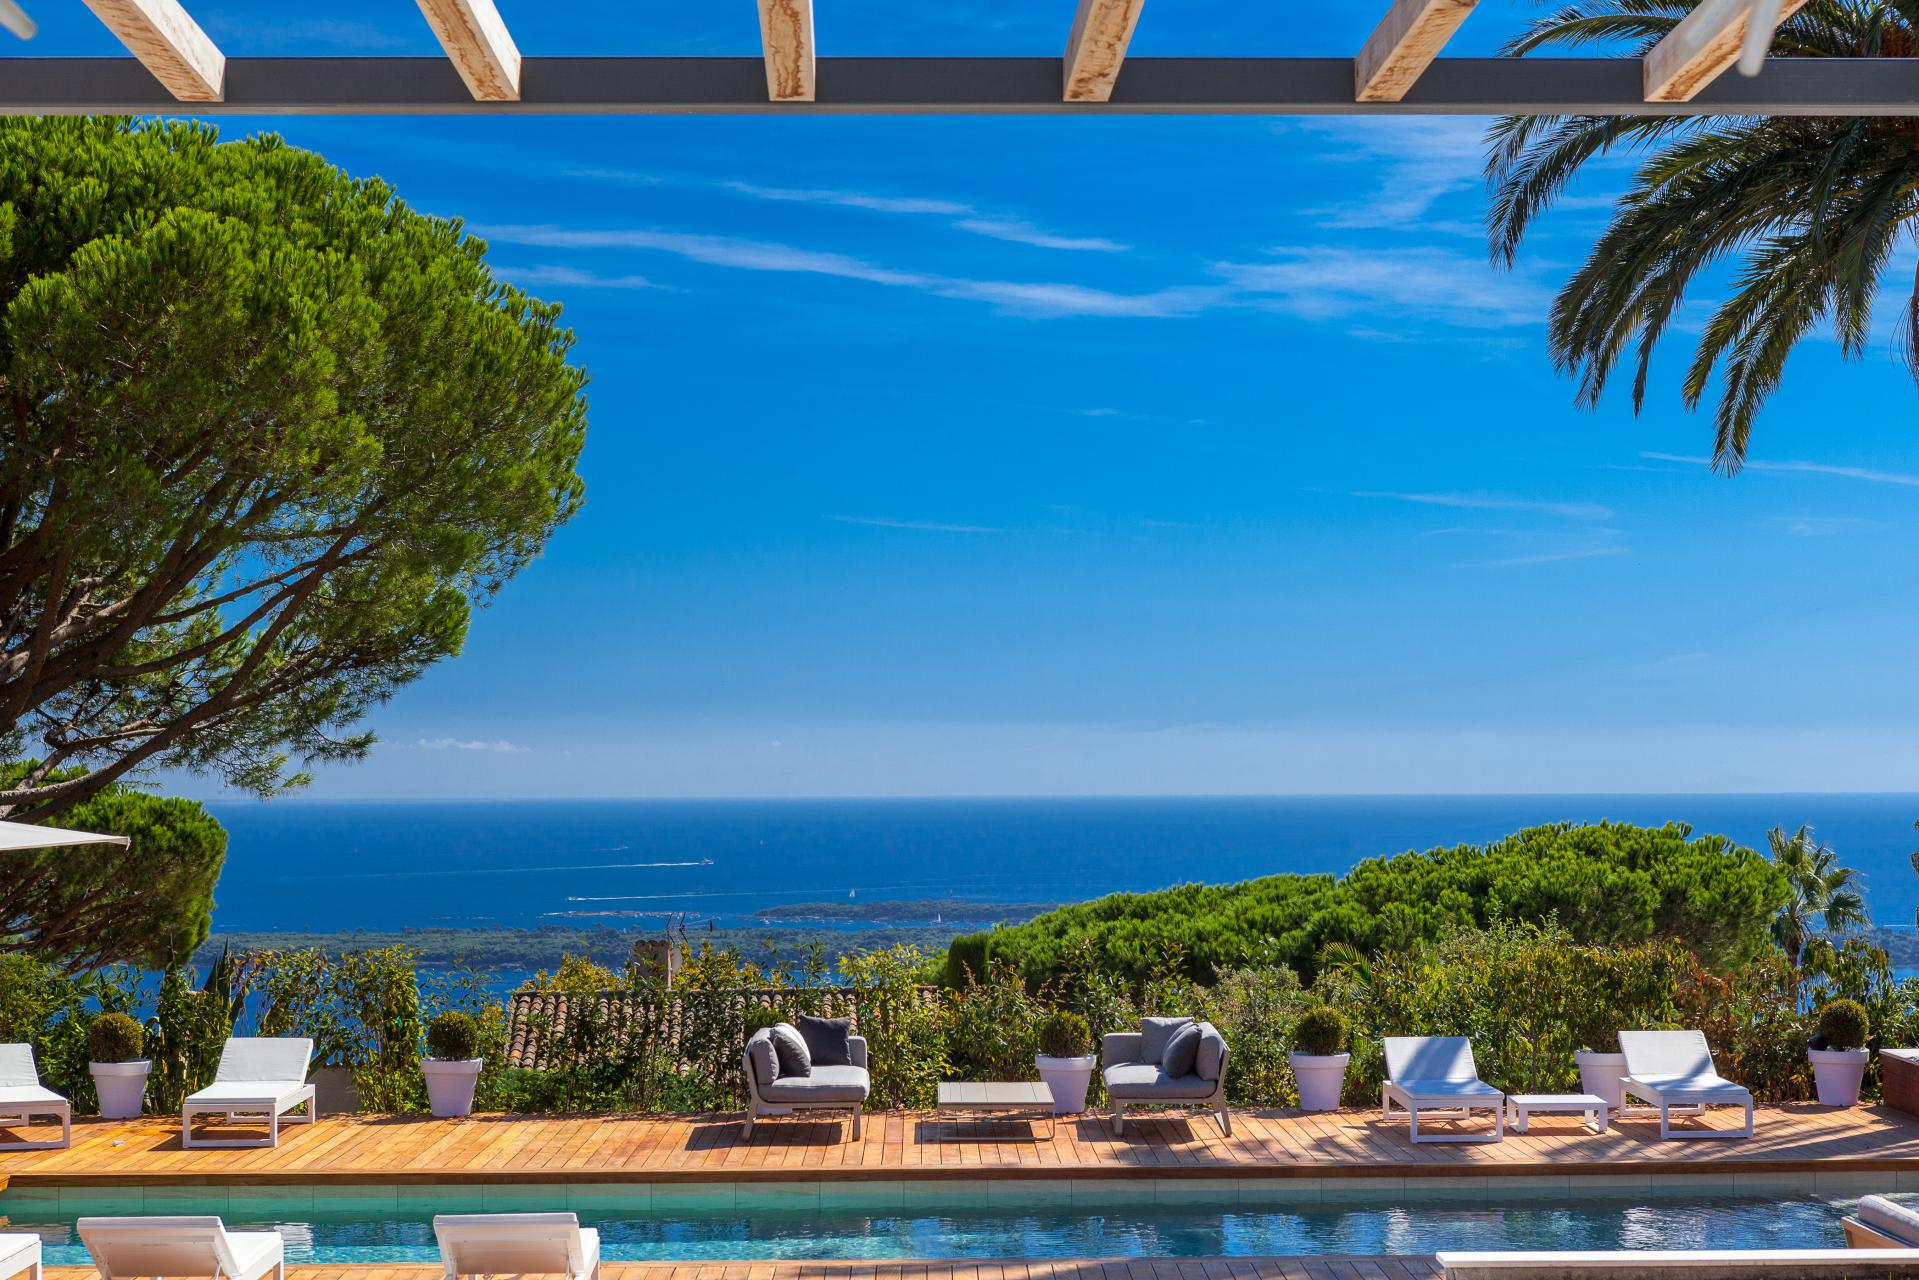 180° sea view from Cap d'Antibes to the Estеrel mountains